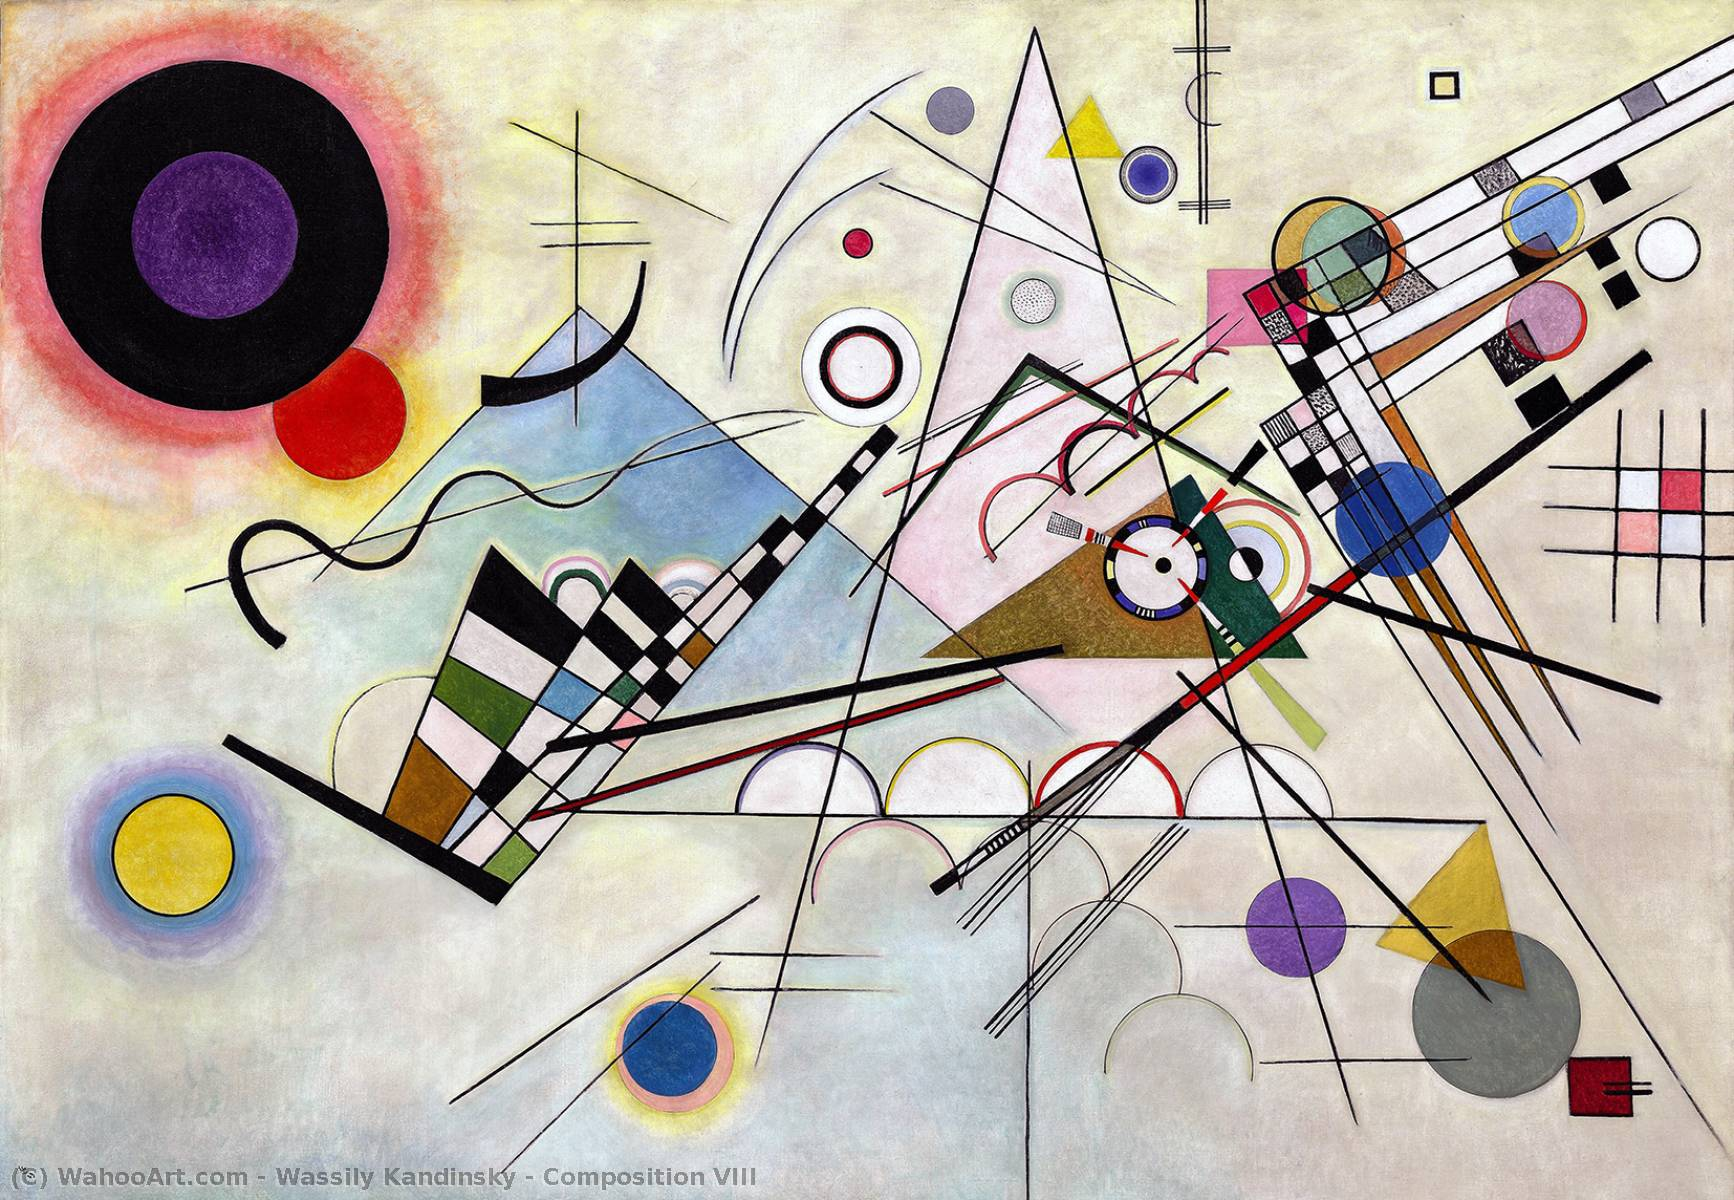 Order Paintings Reproductions | Composition VIII by Wassily Kandinsky | Most-Famous-Paintings.com